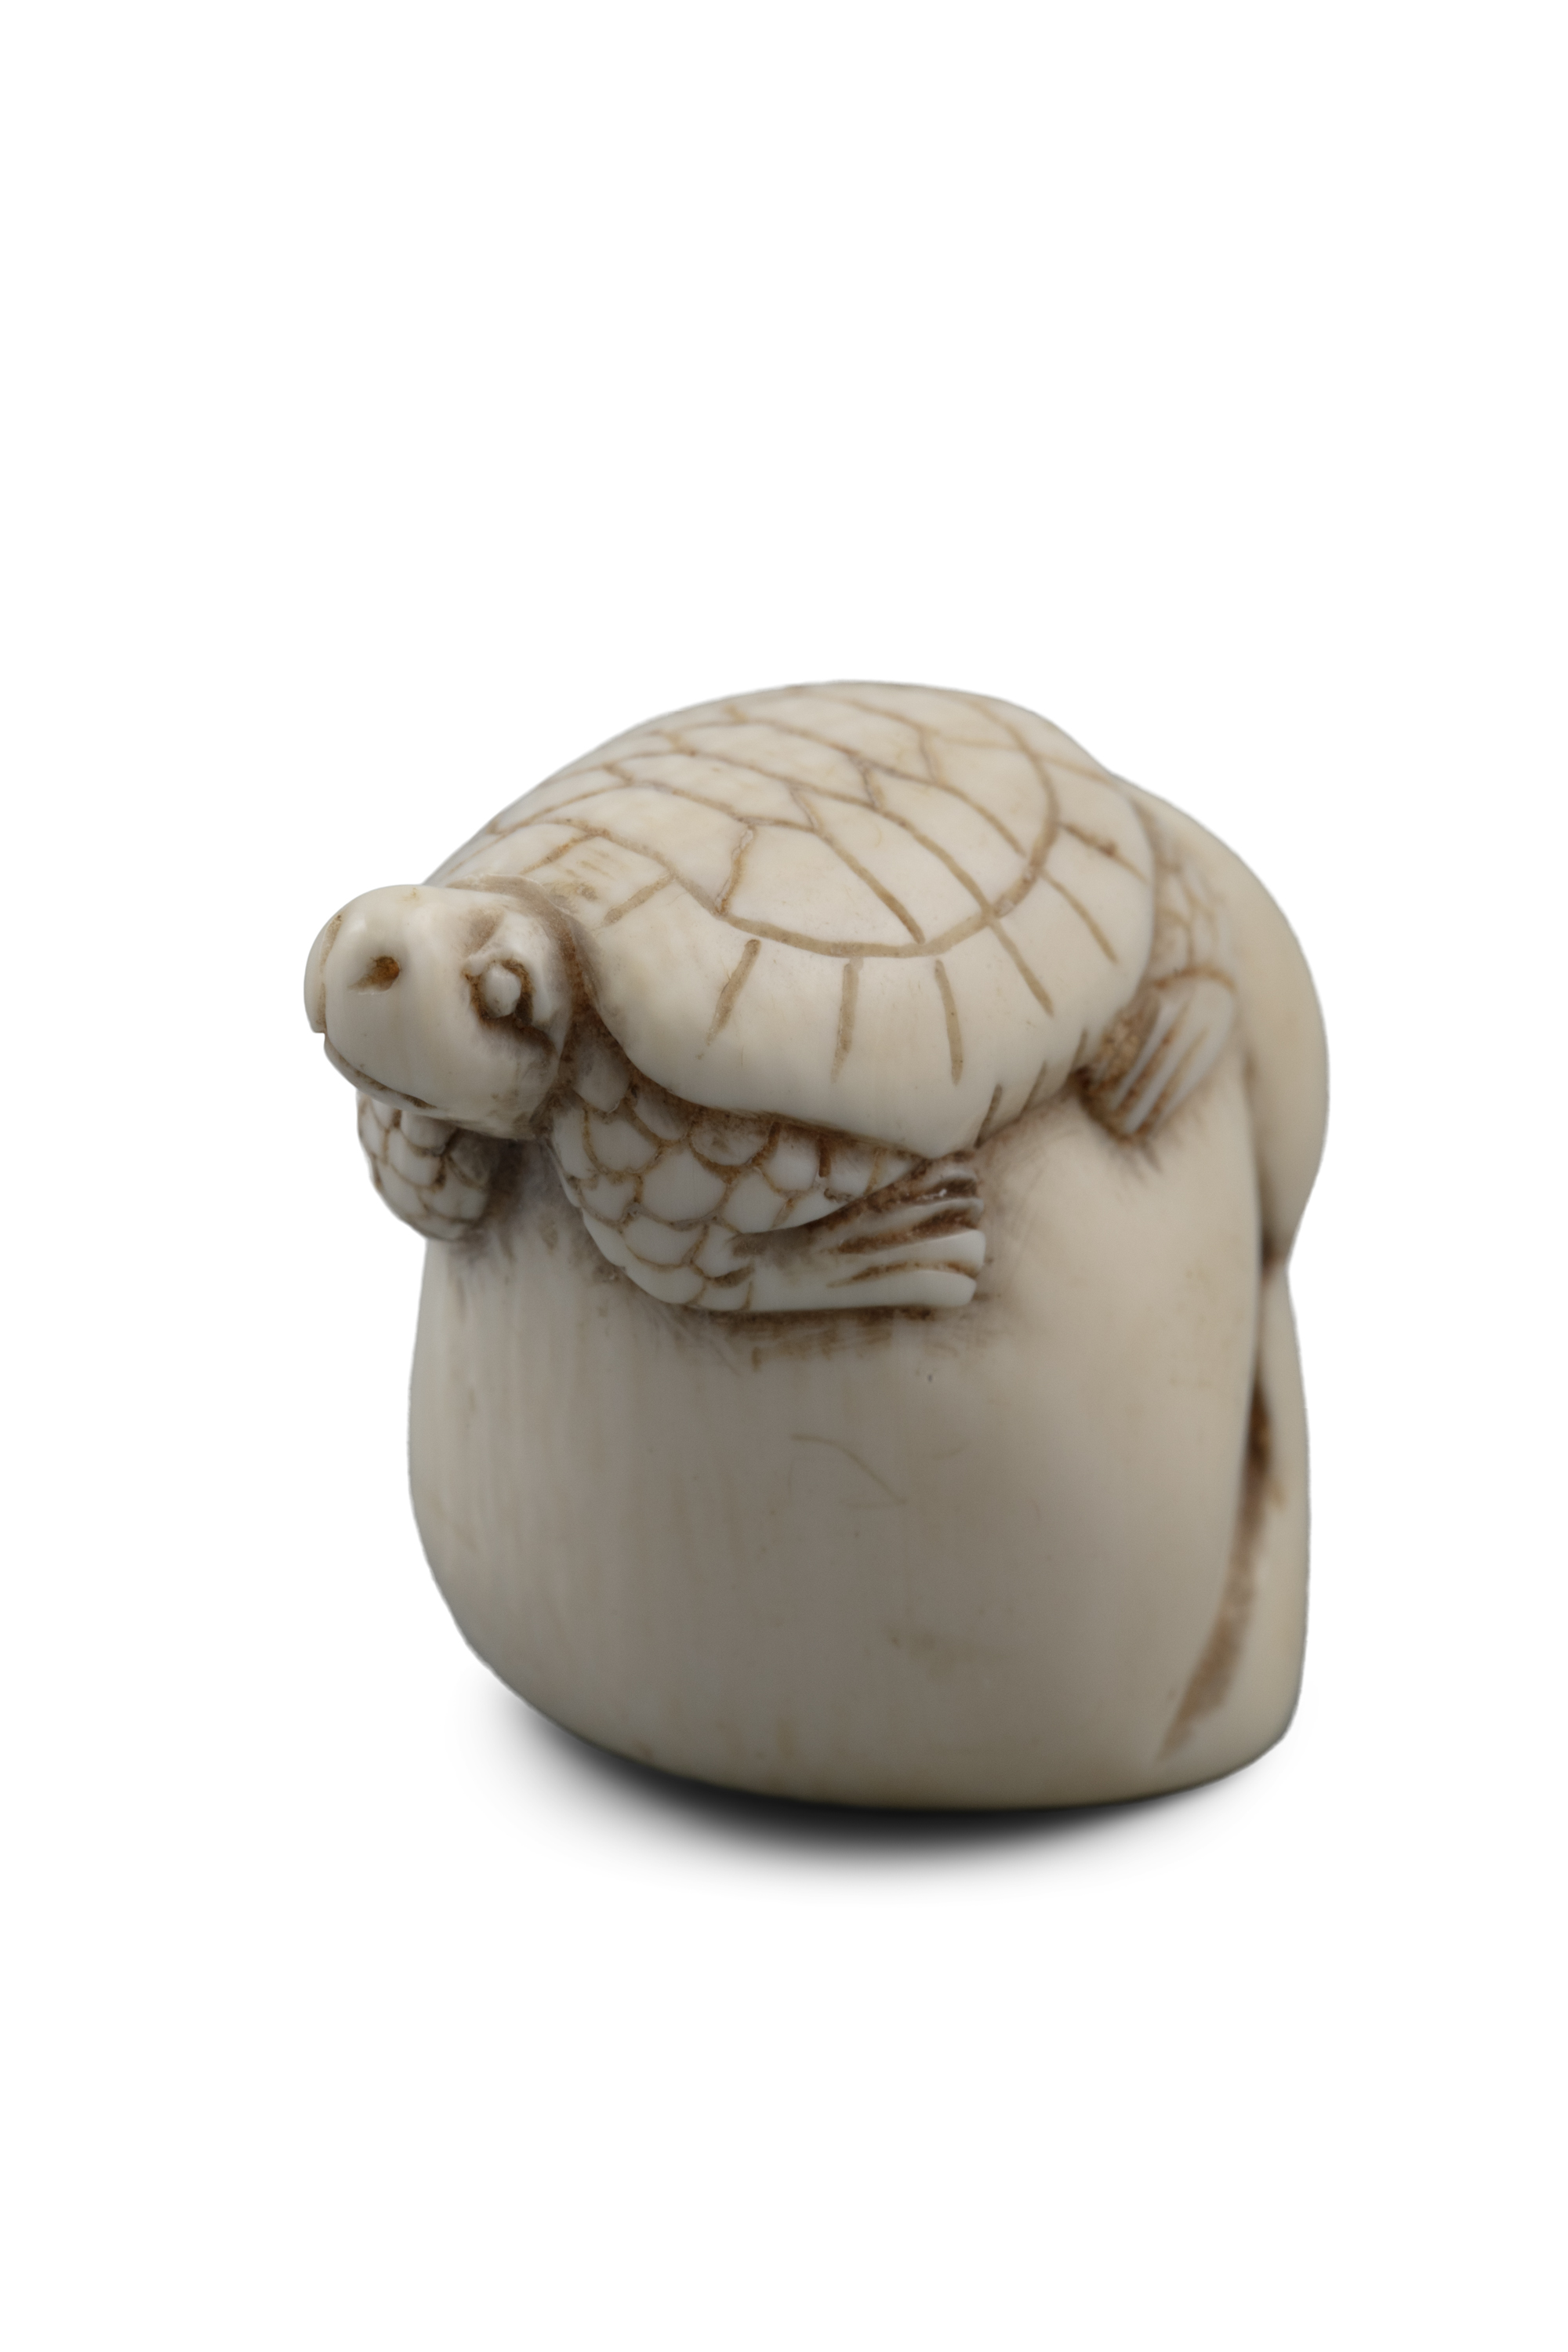 *VANITY - A GROUP OF TWO (2) 'SKULL' KATABORI NETSUKE Japan, 19th century The first one carved out - Image 9 of 18